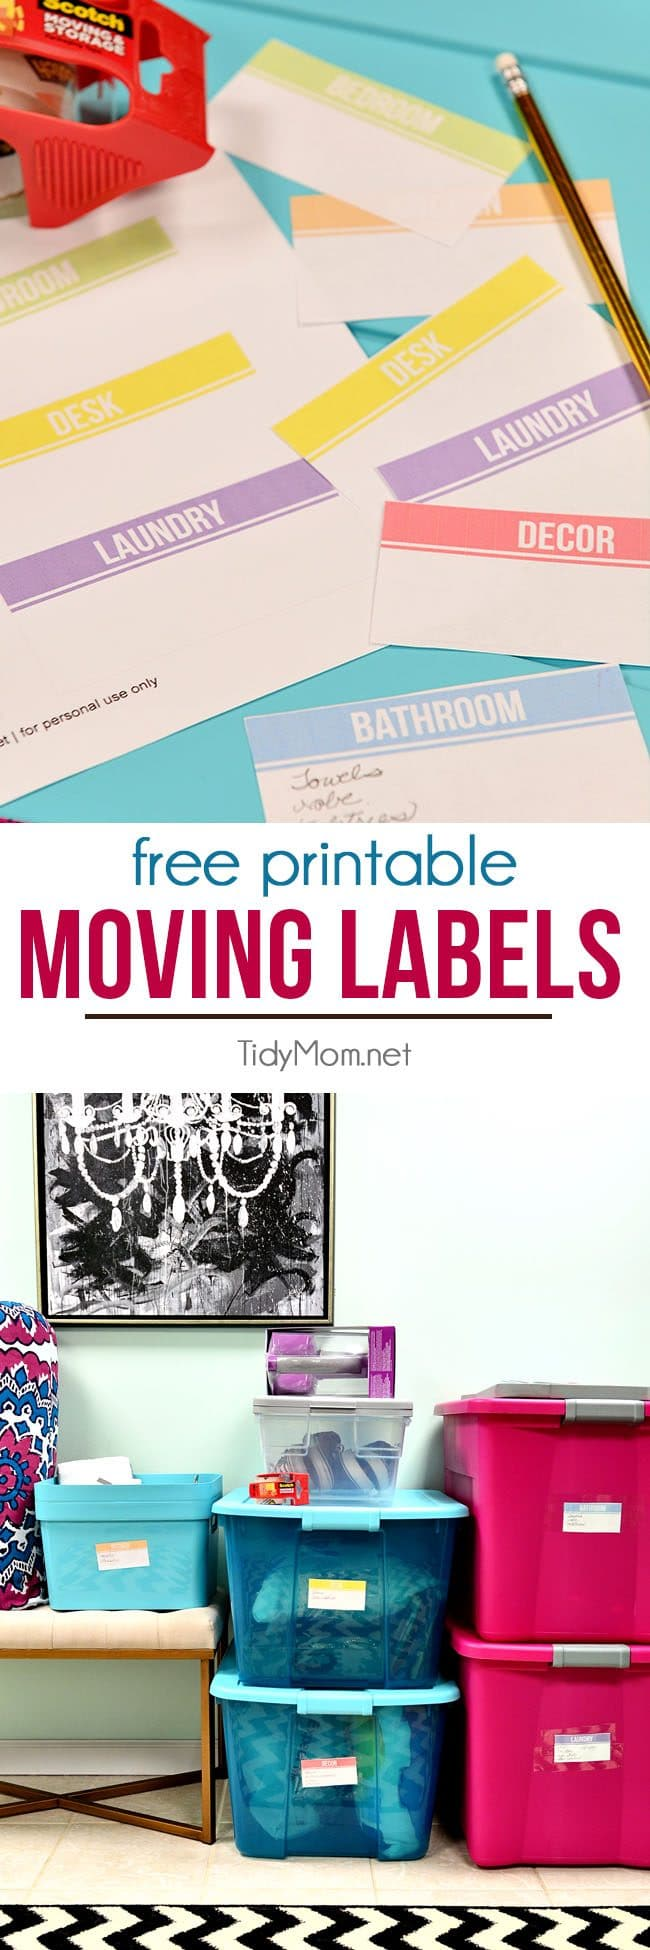 Free printable moving labels. Print on copy paper and cut out